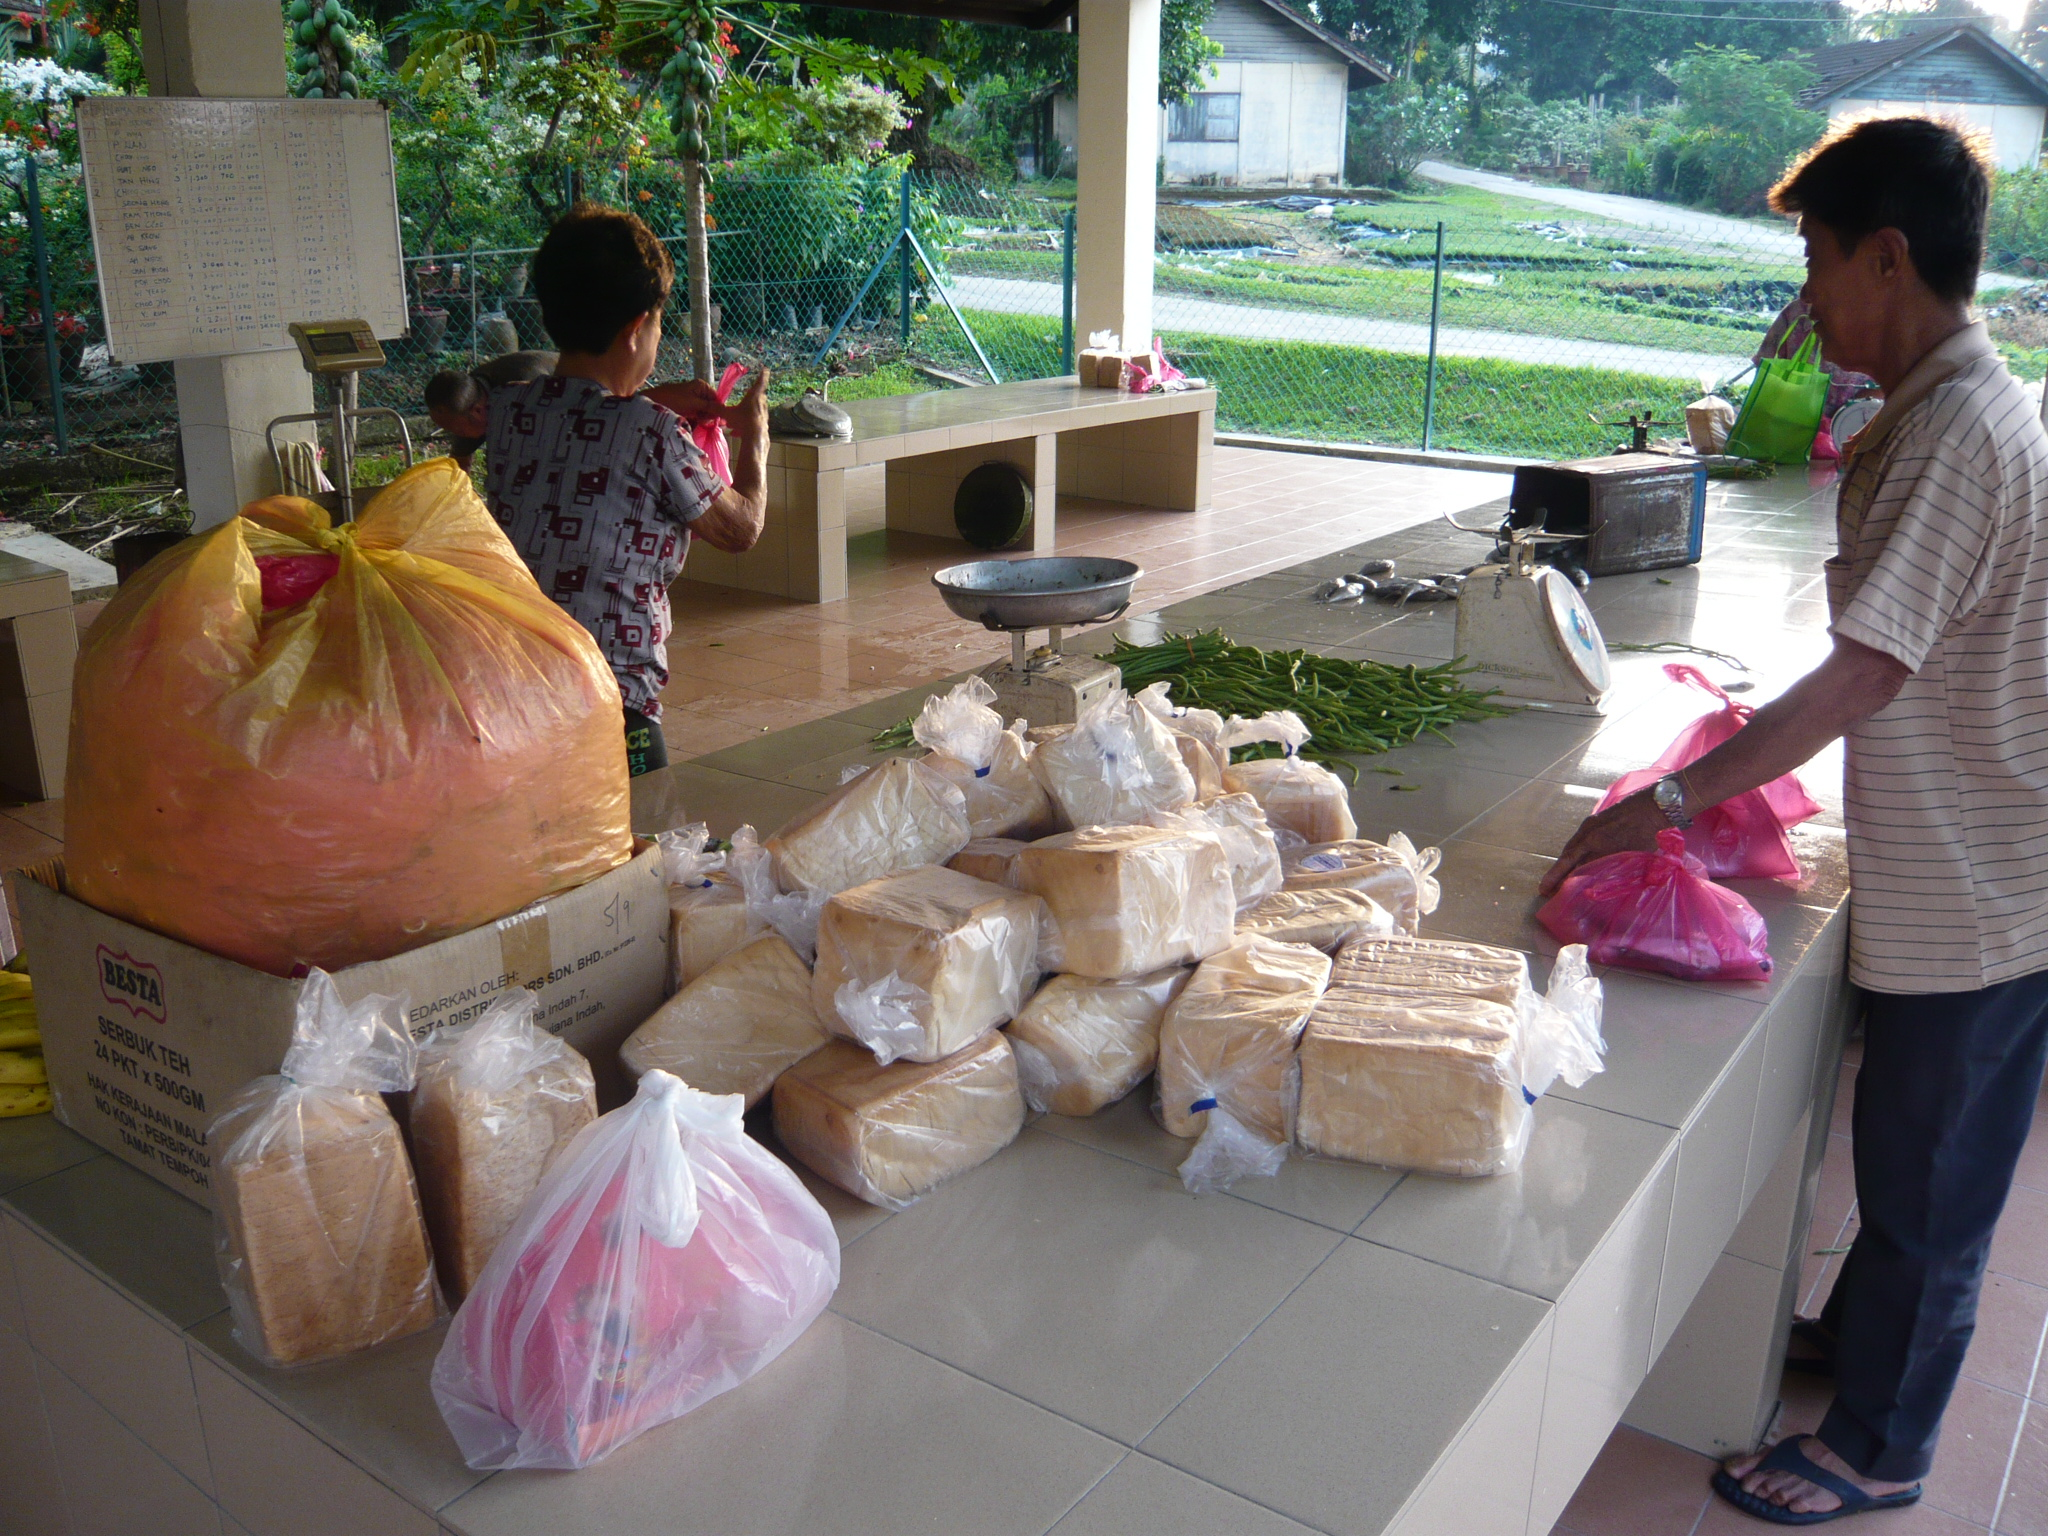 The section attendant allotting the rations for the residents living in the chalets.                               (photo by   Joshua Wong )